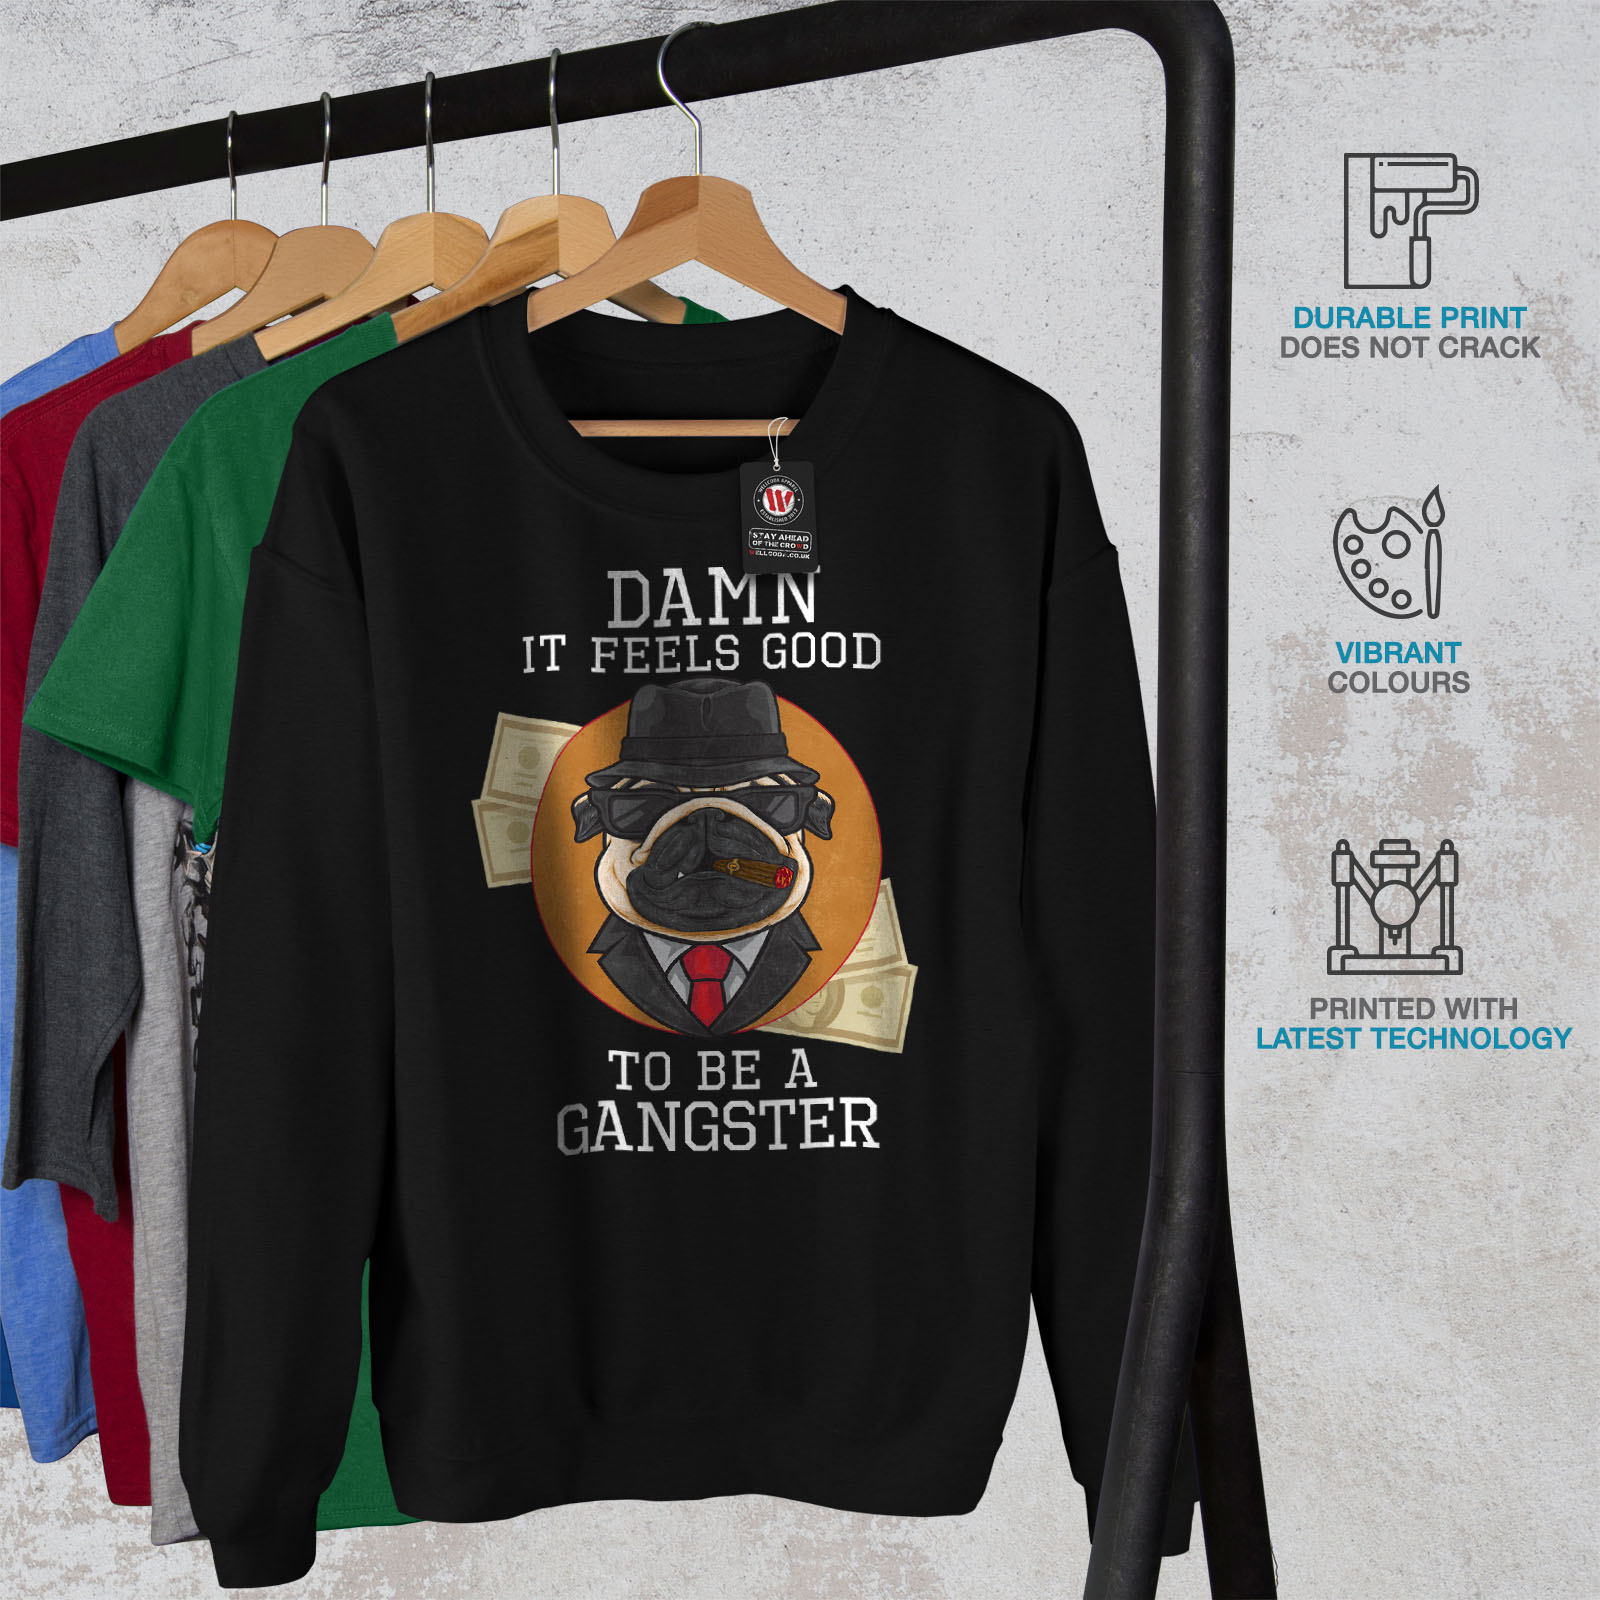 Pug Casual Mafia Jumper Mens Gangster Sweatshirt Puppy Pullover Black Wellcoda 7YXq5AHxH